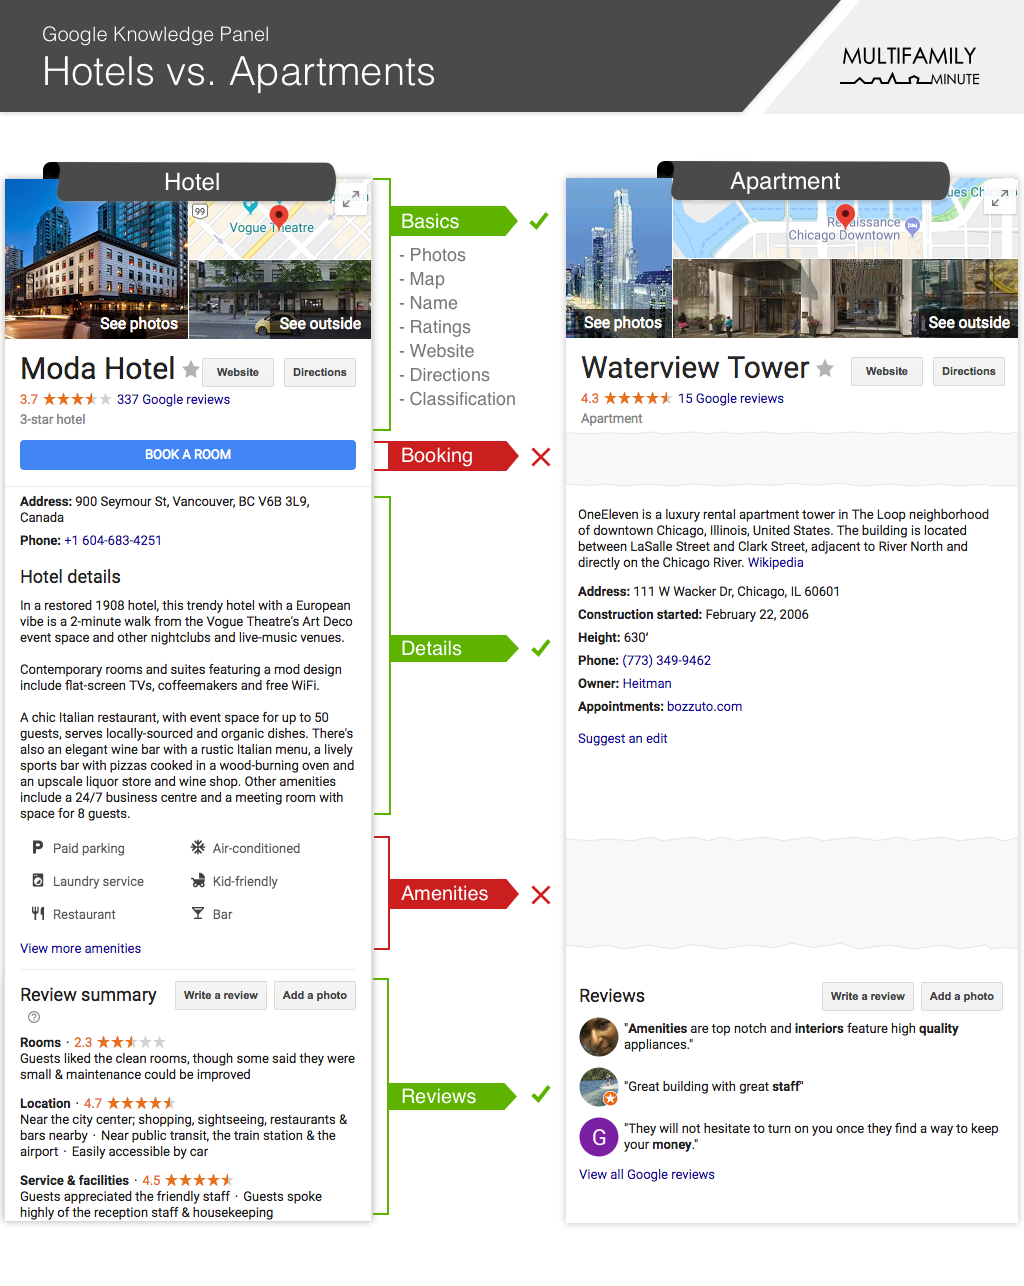 Google Knowledge Graph for Hotels vs. Apartments